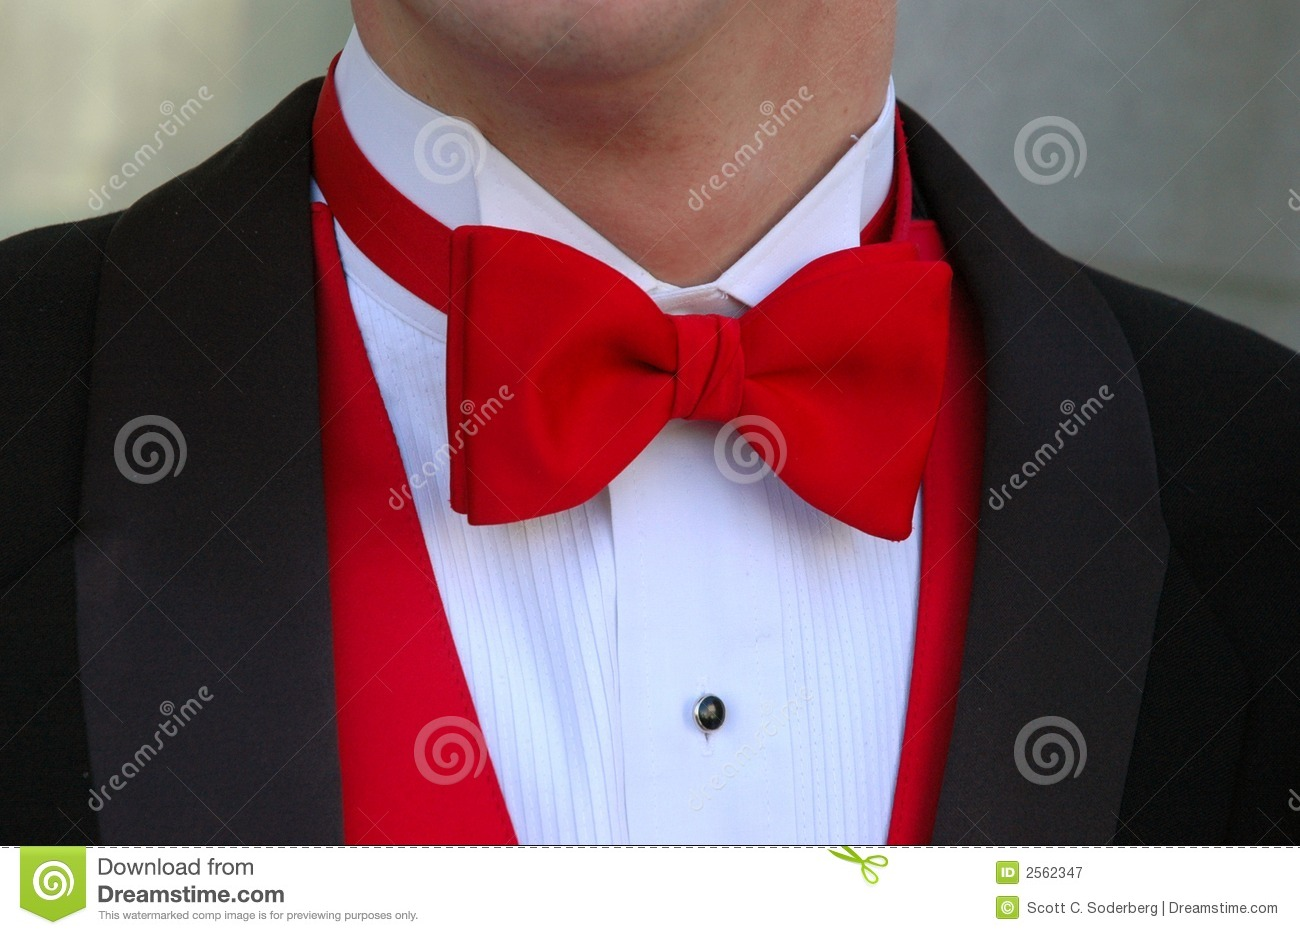 8e763869 Detail of man's upper torso dressed in formal attire wearing red bow tie  with red vest